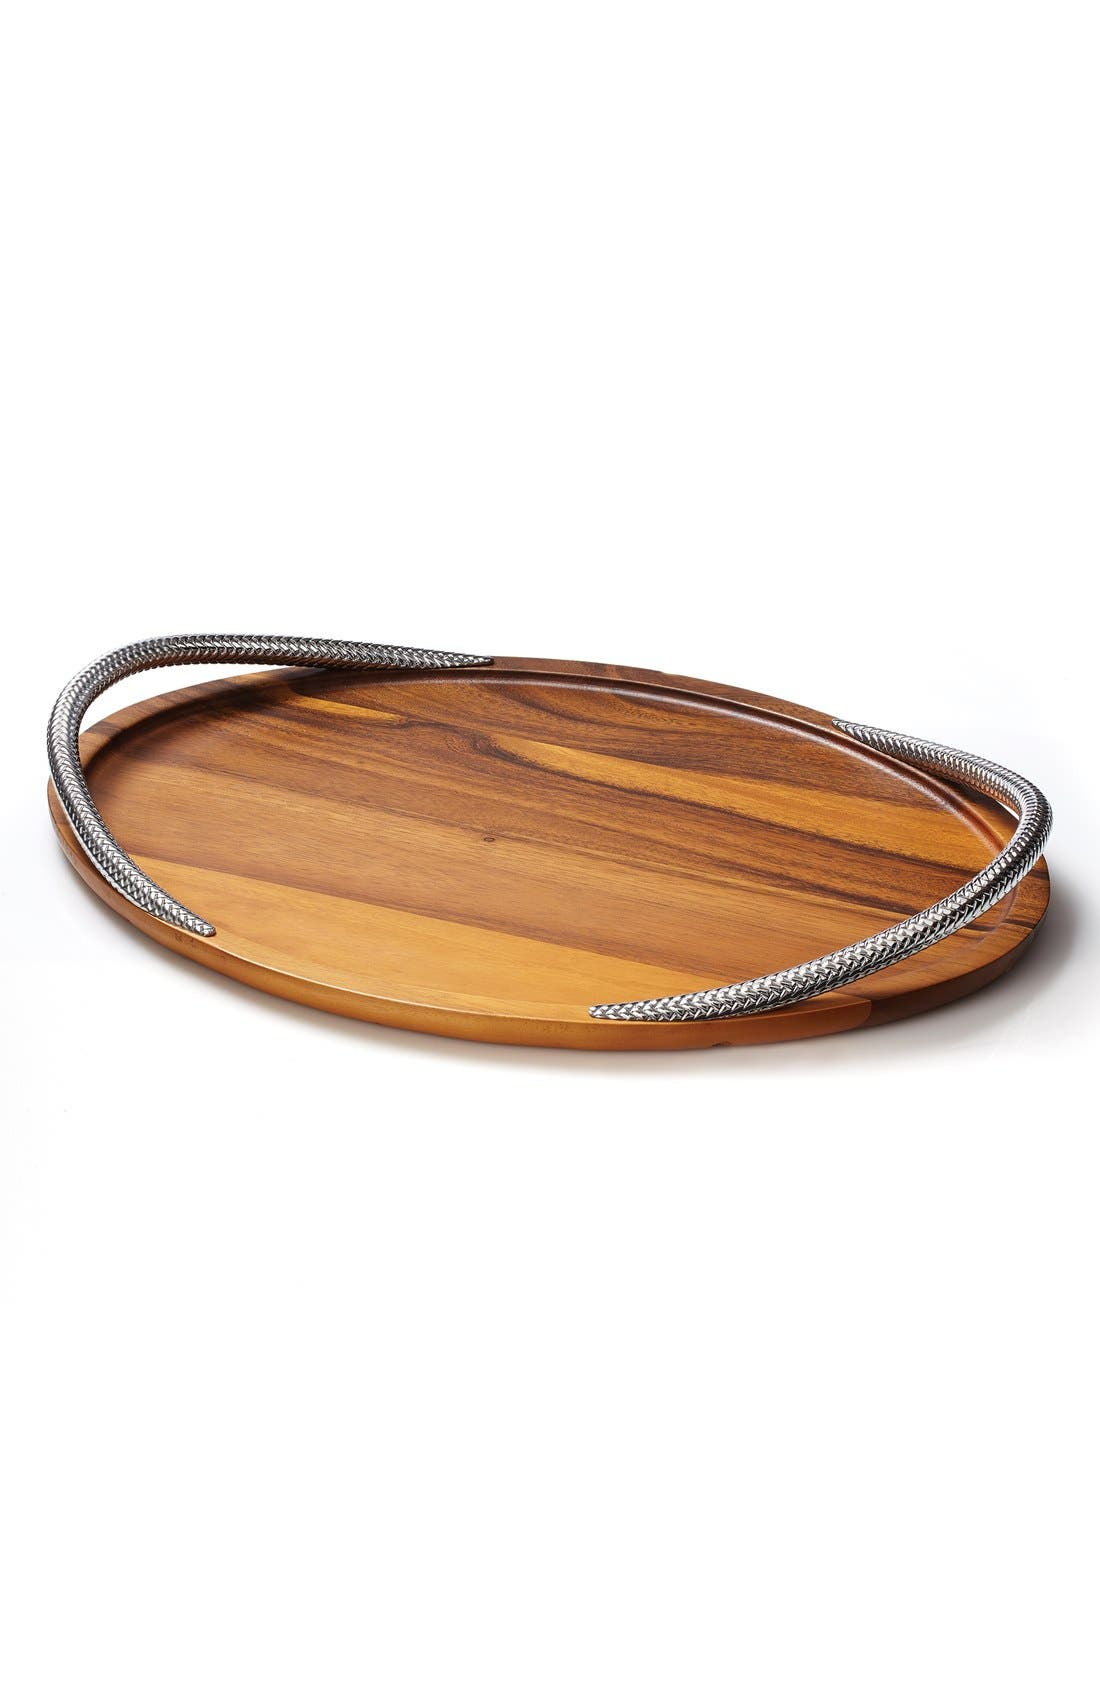 Braid Serving Tray,                         Main,                         color, Silver